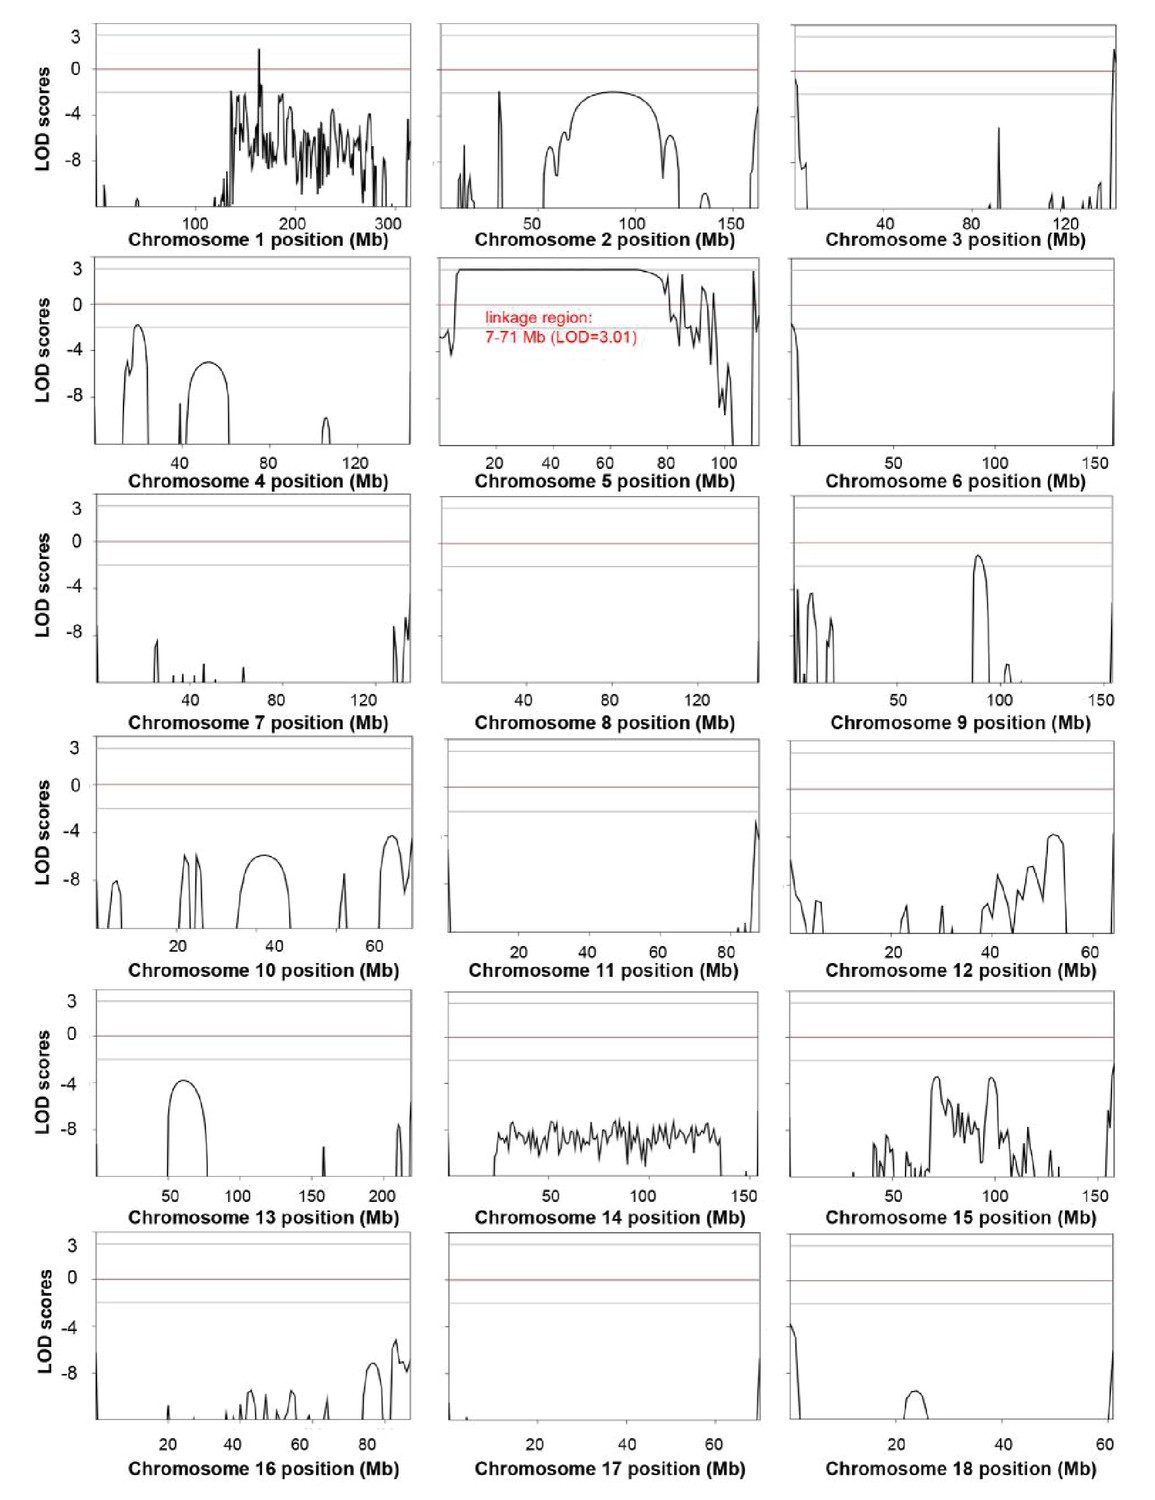 Pilot study of large scale production of mutant pigs by enu genome wide linkage analysis in the white coat color and hearing loss mutant pedigree fandeluxe Image collections